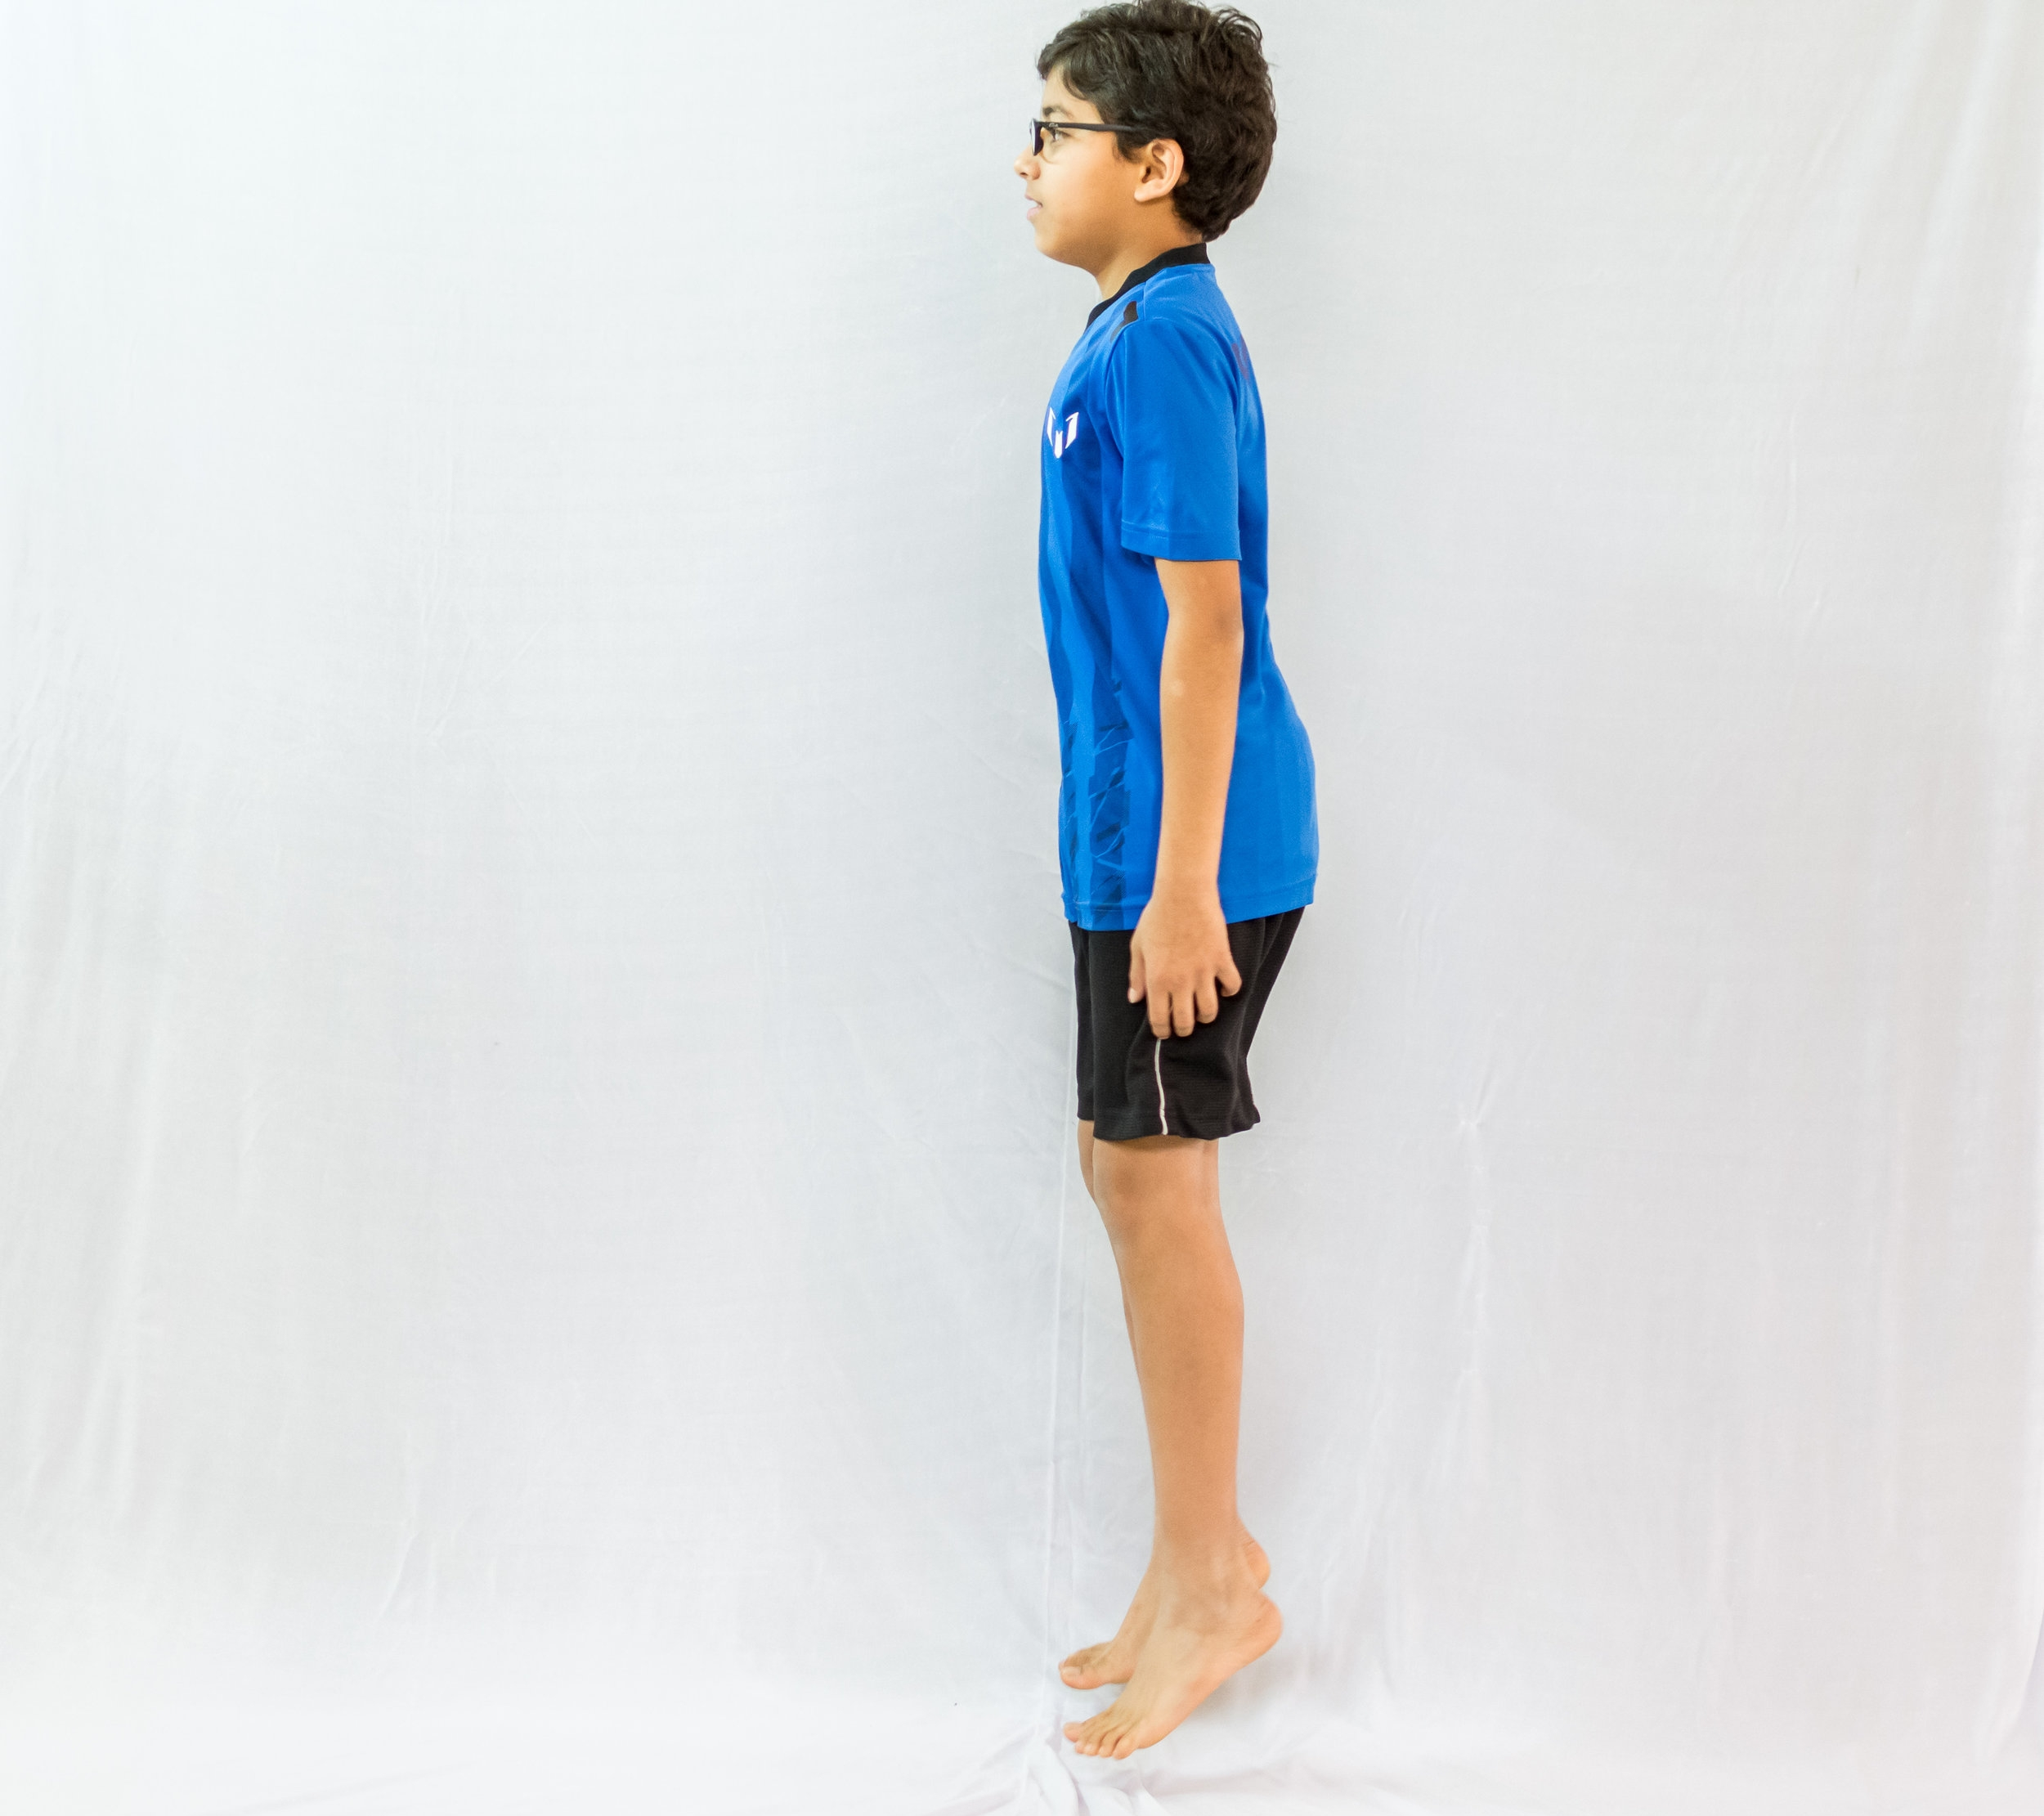 Skipping Jacks - Stand tall like a puppet. Now imagine that puppet is being pulled up by the string.Slowly start to skip up and down in the same spot, landing softly on the ground such that you can't hear yourself.At all times maintain a tall posture.